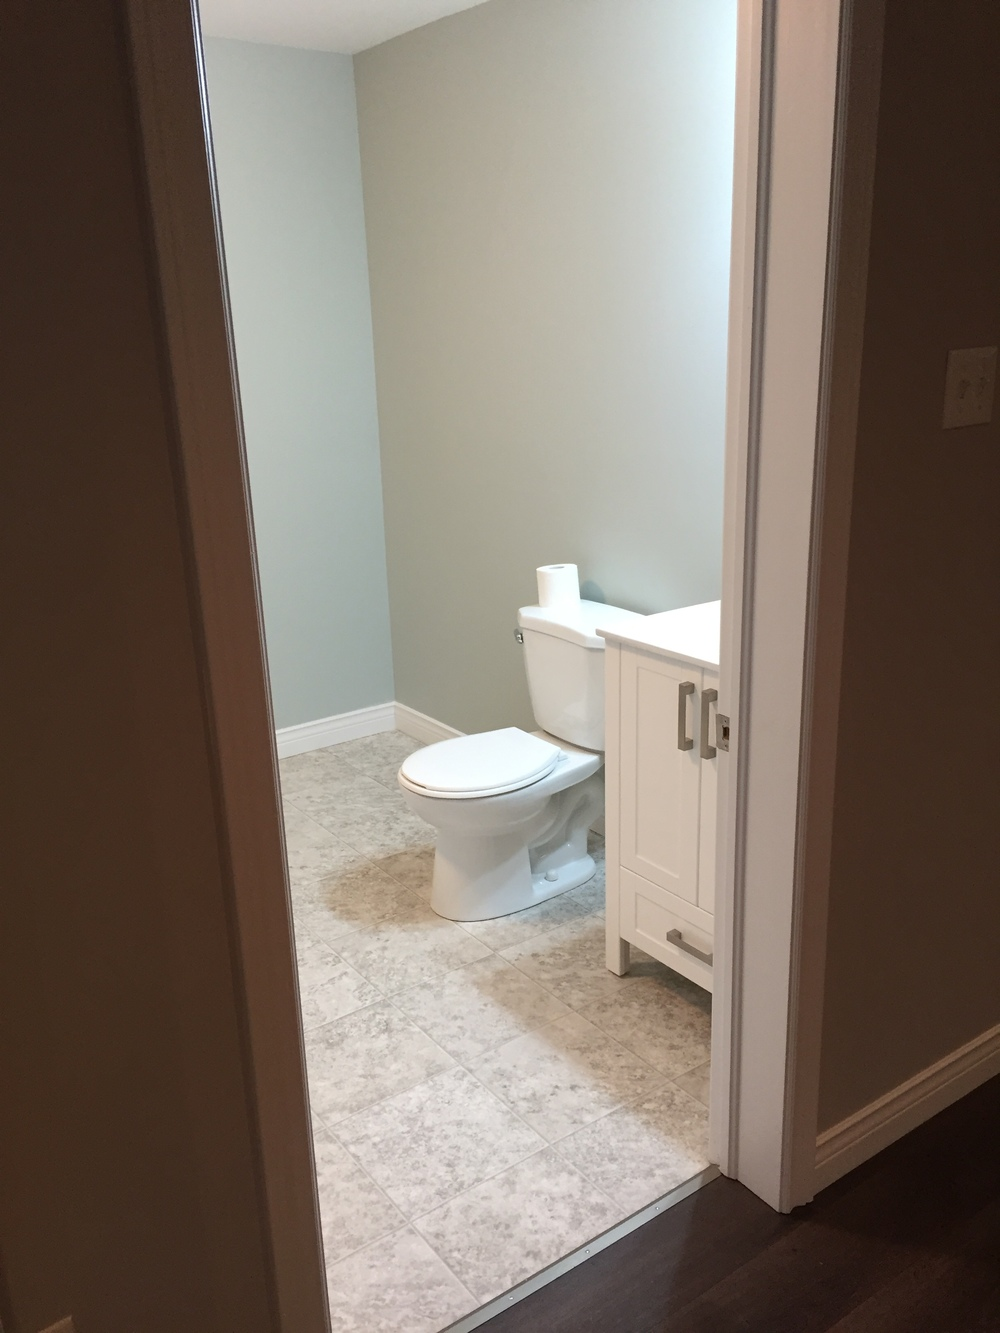 Half bath off rec room.